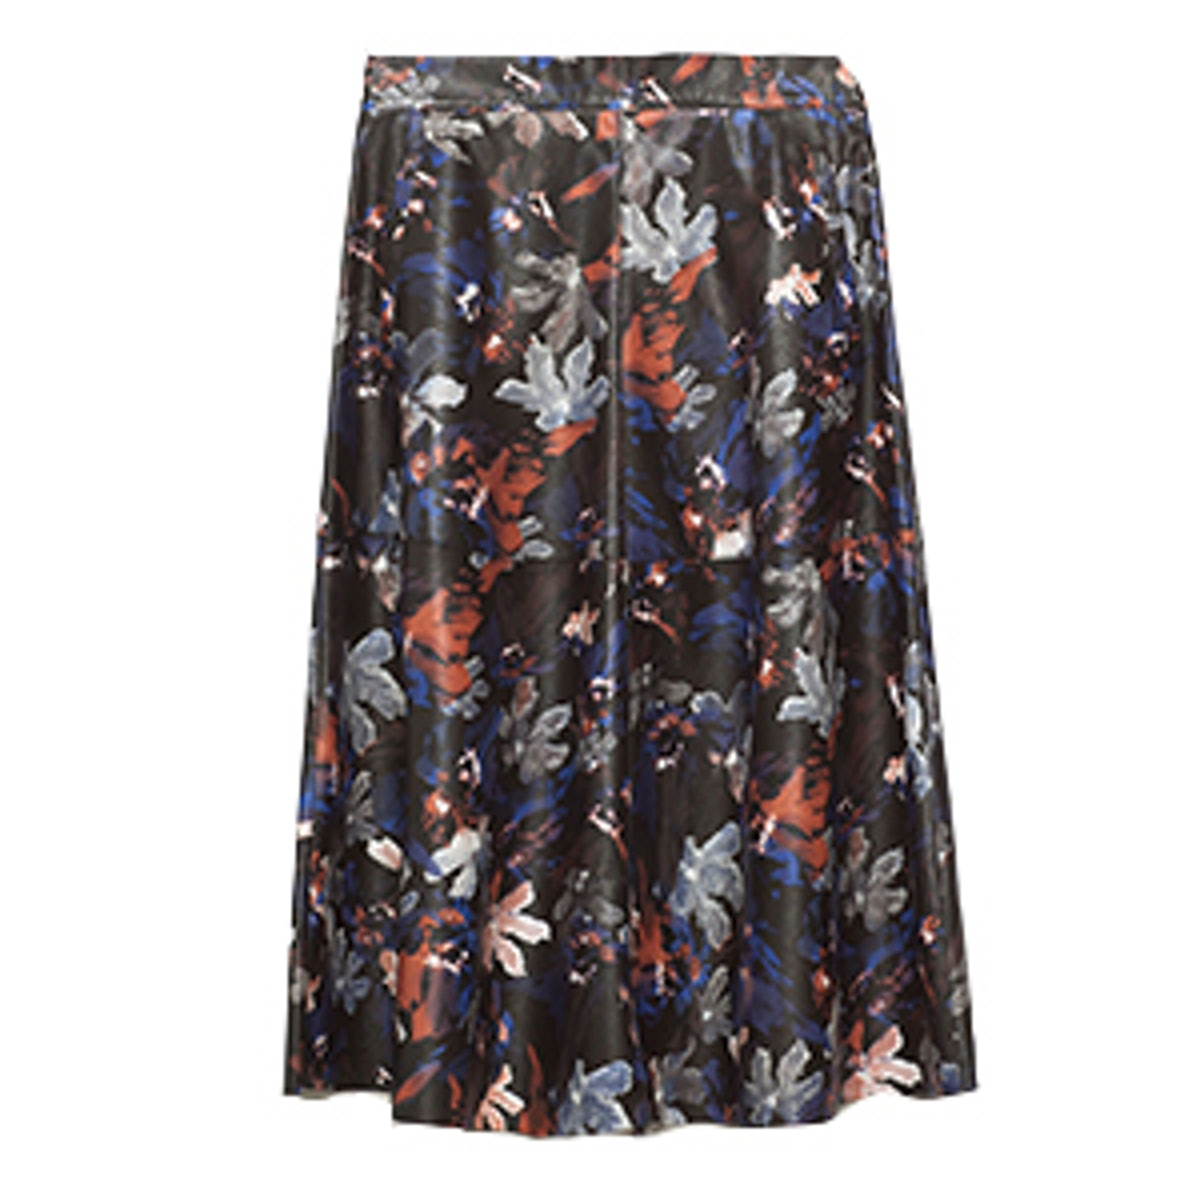 Printed Leather Effect Skirt